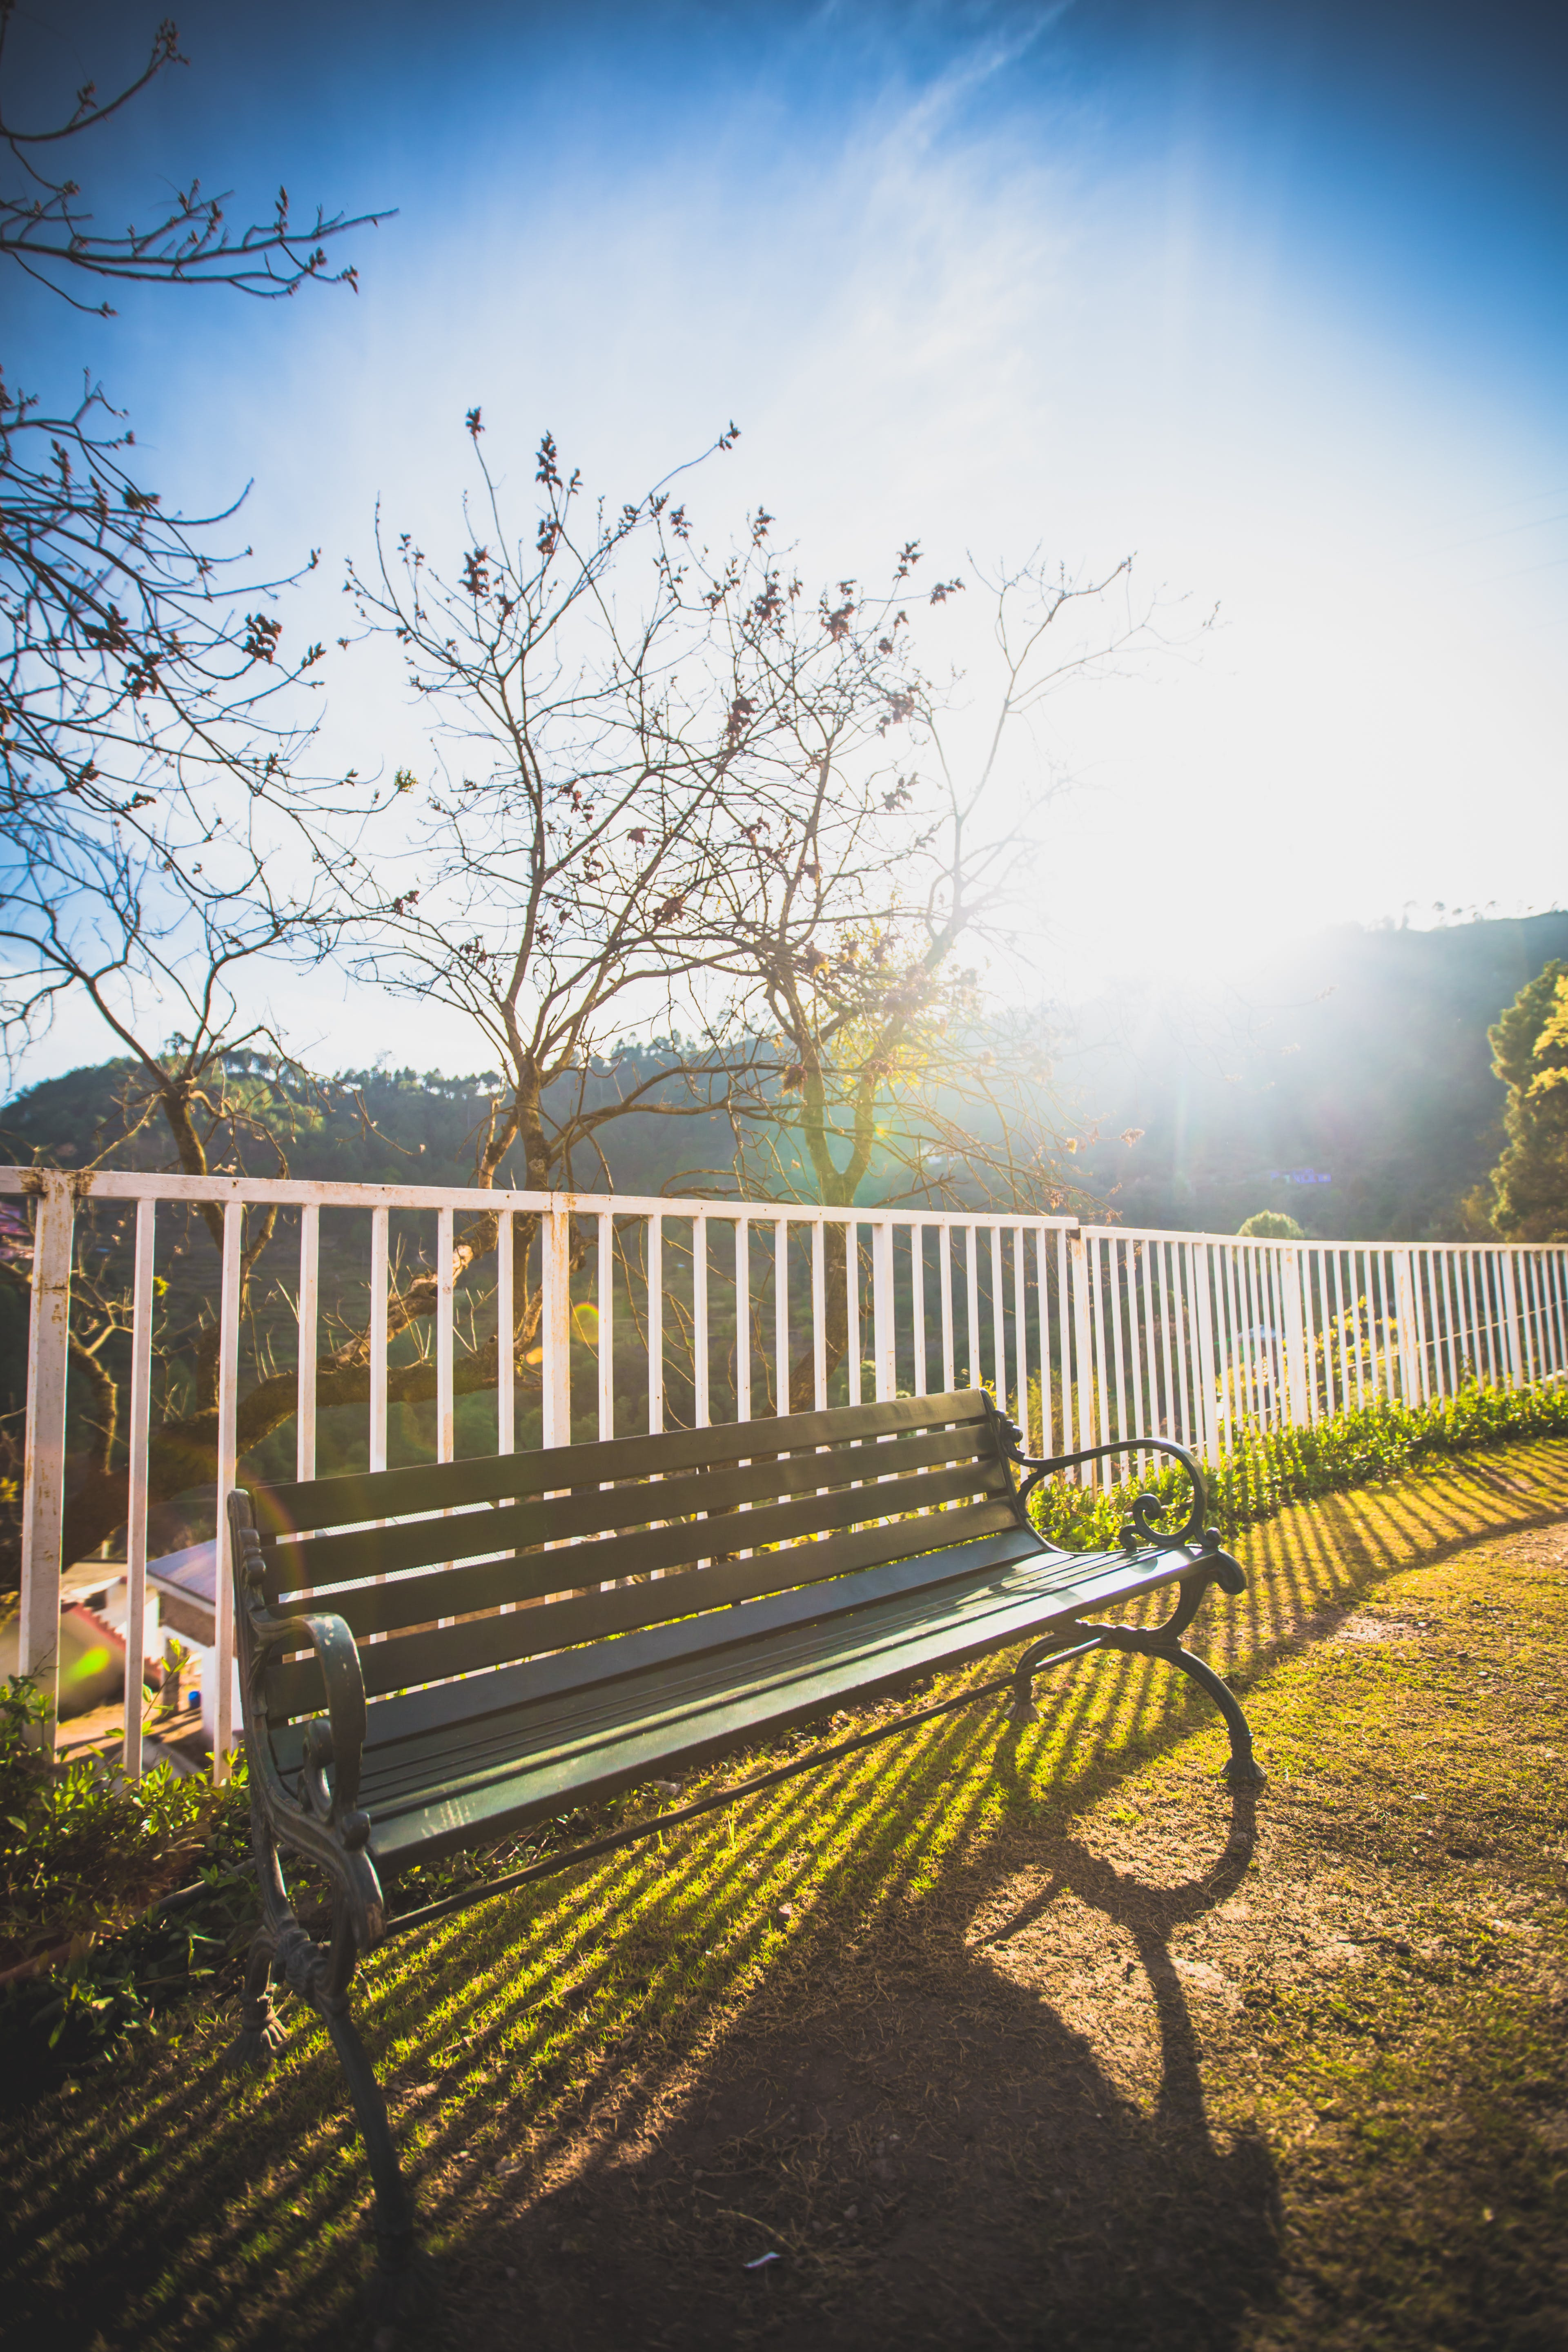 Free stock photo of bench, blue sky, early morning, fence